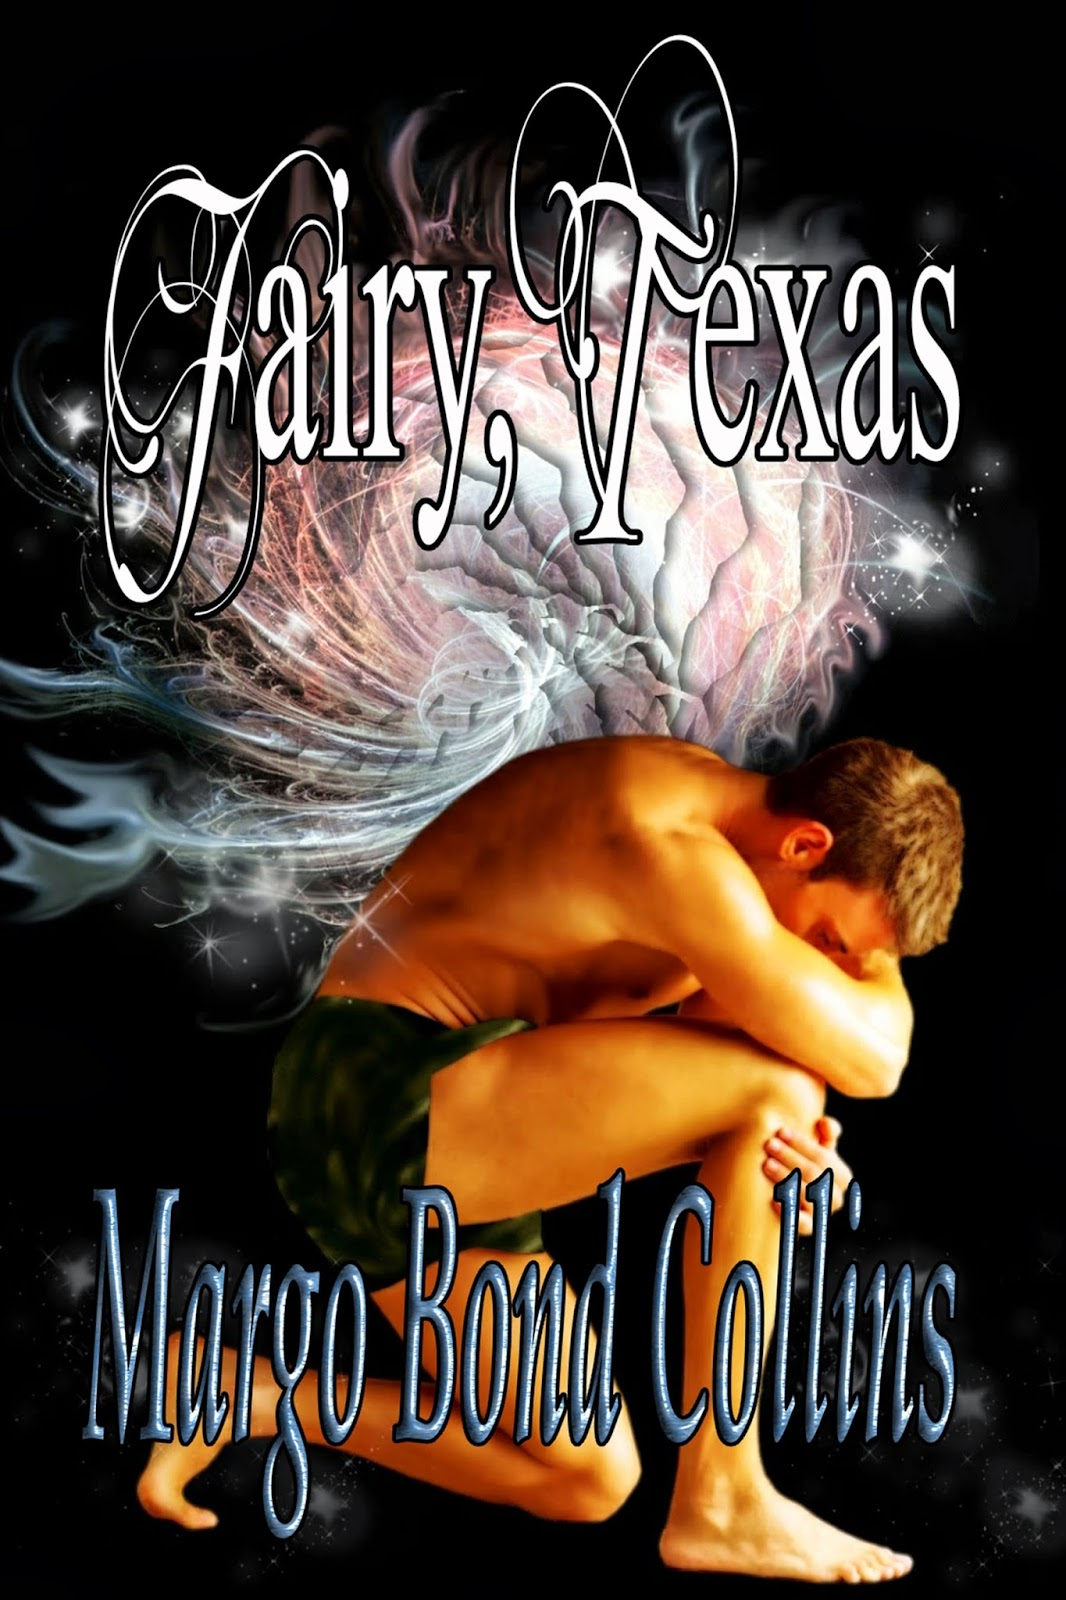 http://www.amazon.com/Fairy-Texas-Margo-Bond-Collins-ebook/dp/B00I7BTMJ4/ref=sr_1_2?s=books&ie=UTF8&qid=1395784505&sr=1-2&keywords=margo+bond+collins